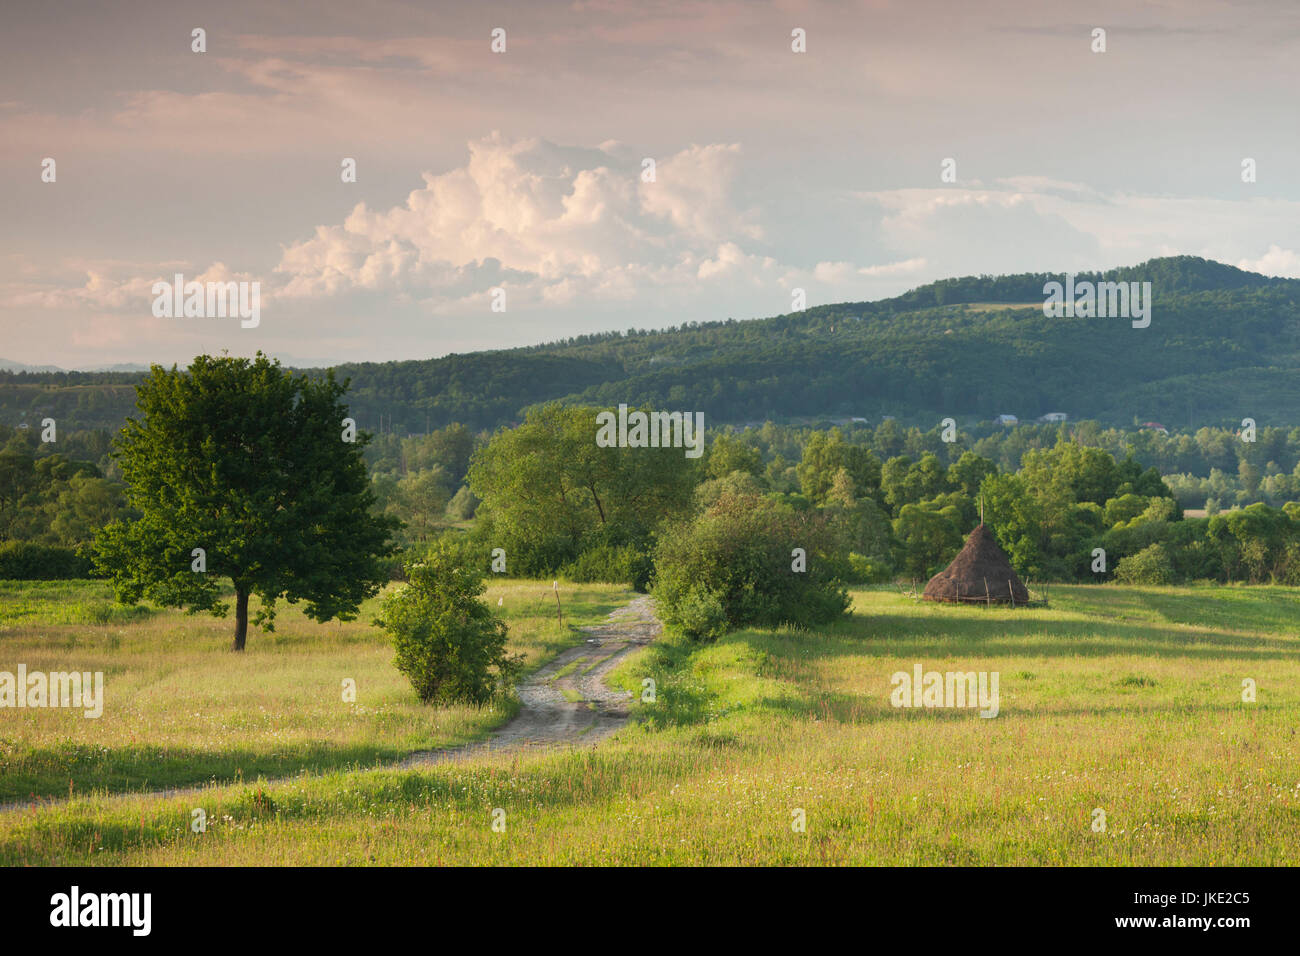 Romania, Maramures Region, Sarasau, country road by the Ukranian frontier, late afternoon - Stock Image